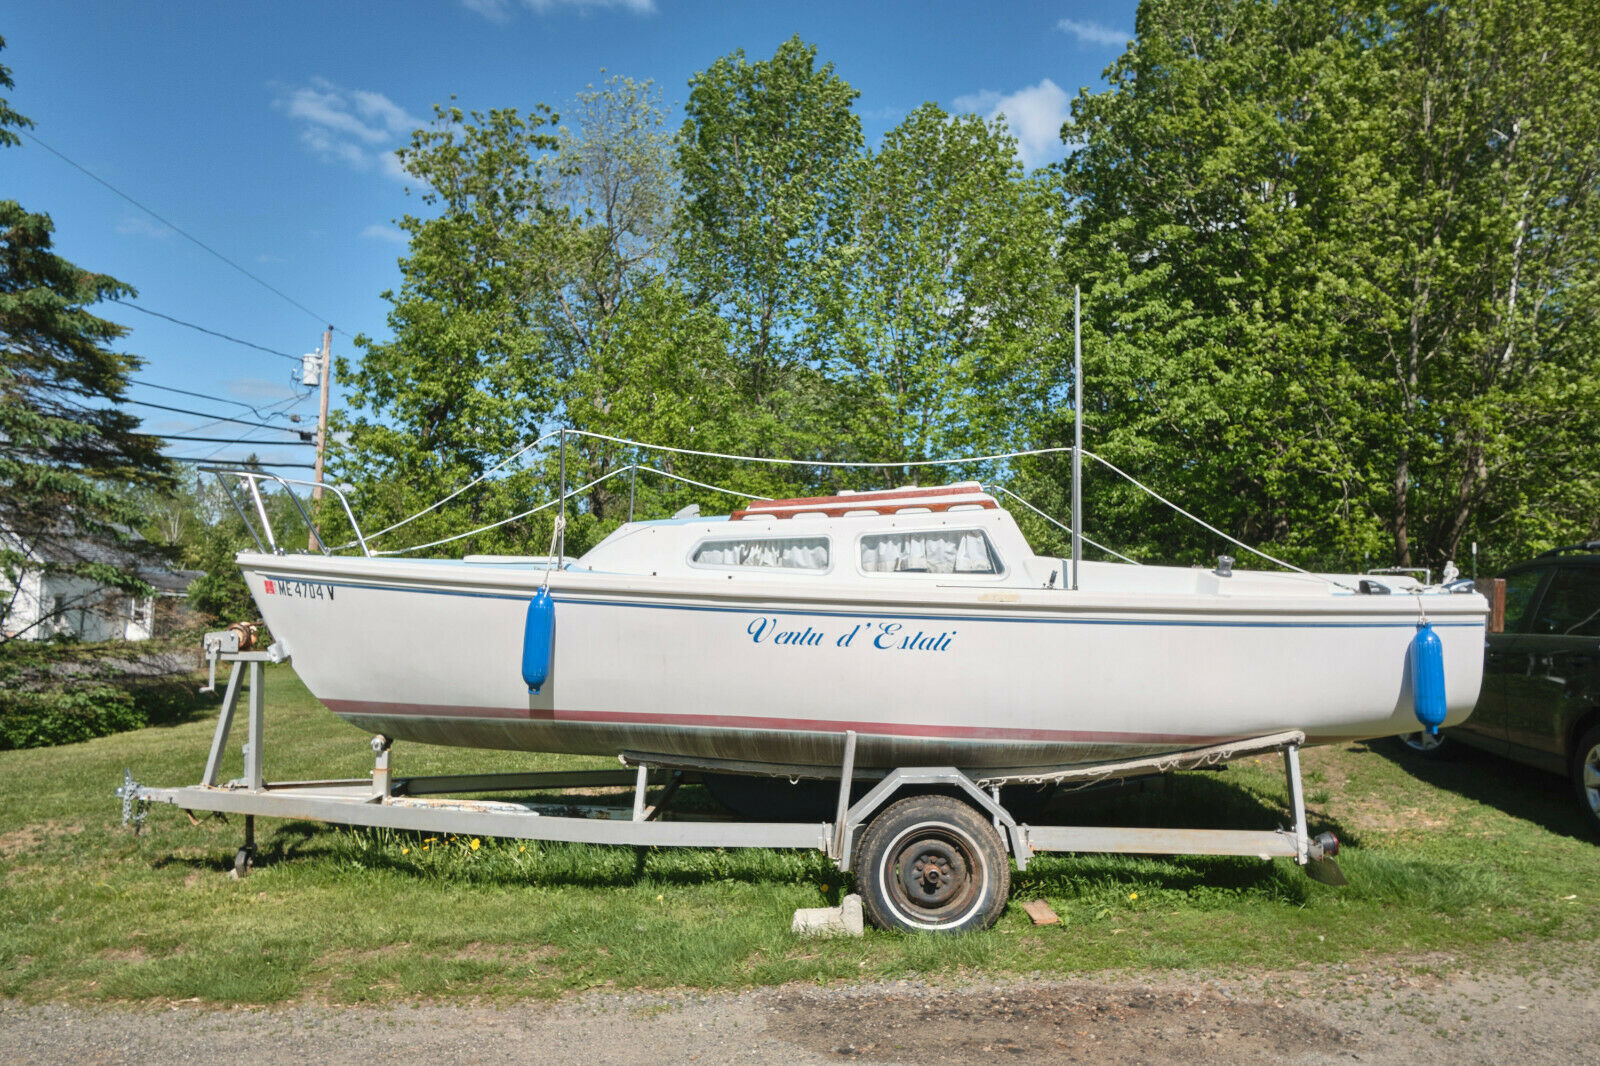 Price Reduced for this Weekend! Make Offer: 1972 Catalina 22 Sailboat